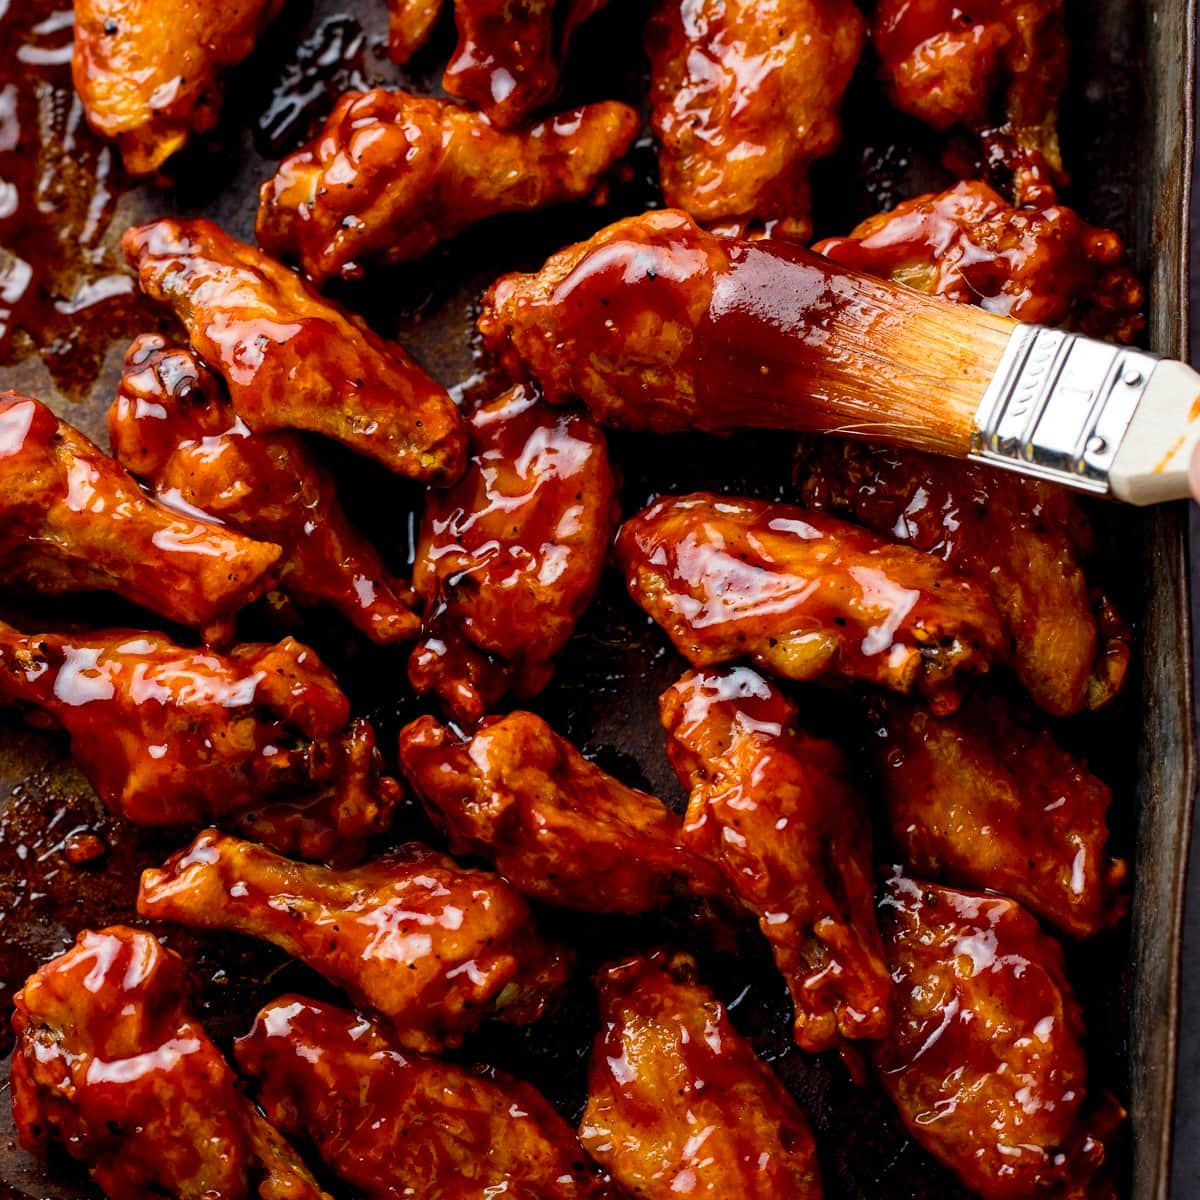 BBQ chicken wings on a tray with BBQ sauce being brushed on